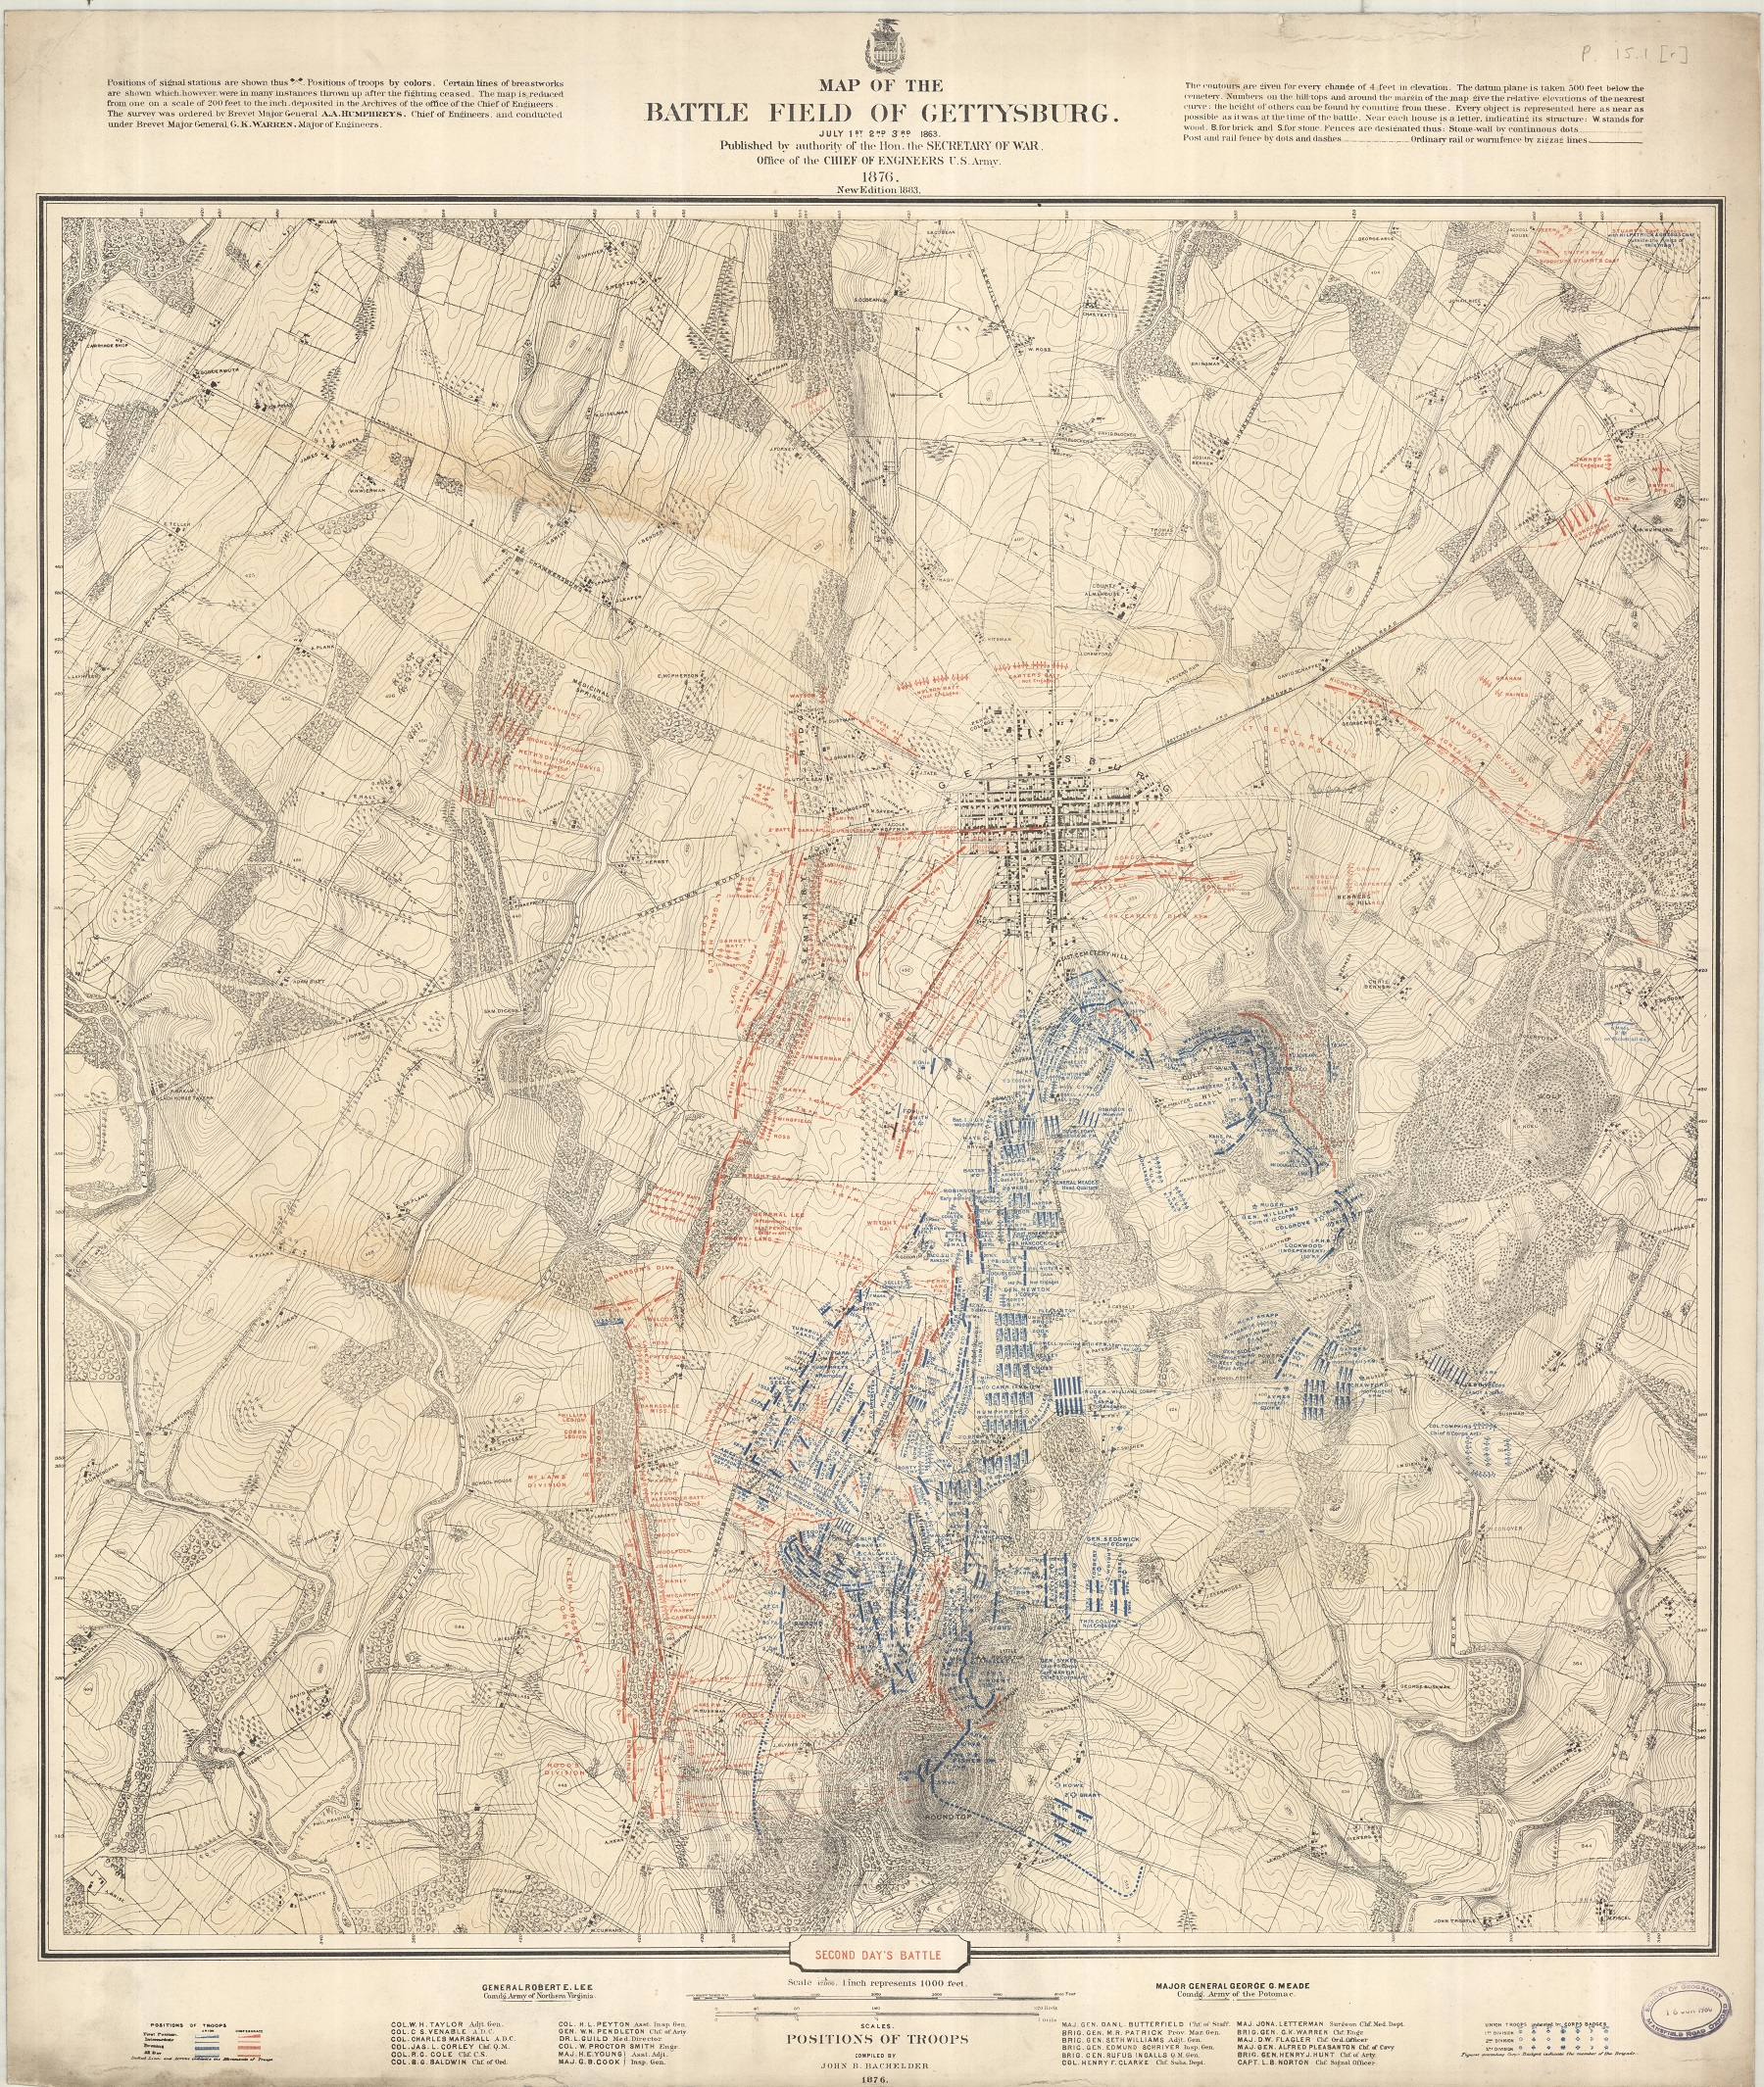 Gettysburg Topographic Map.Going Invasion And Defence Maps Bodleian Map Room Blog